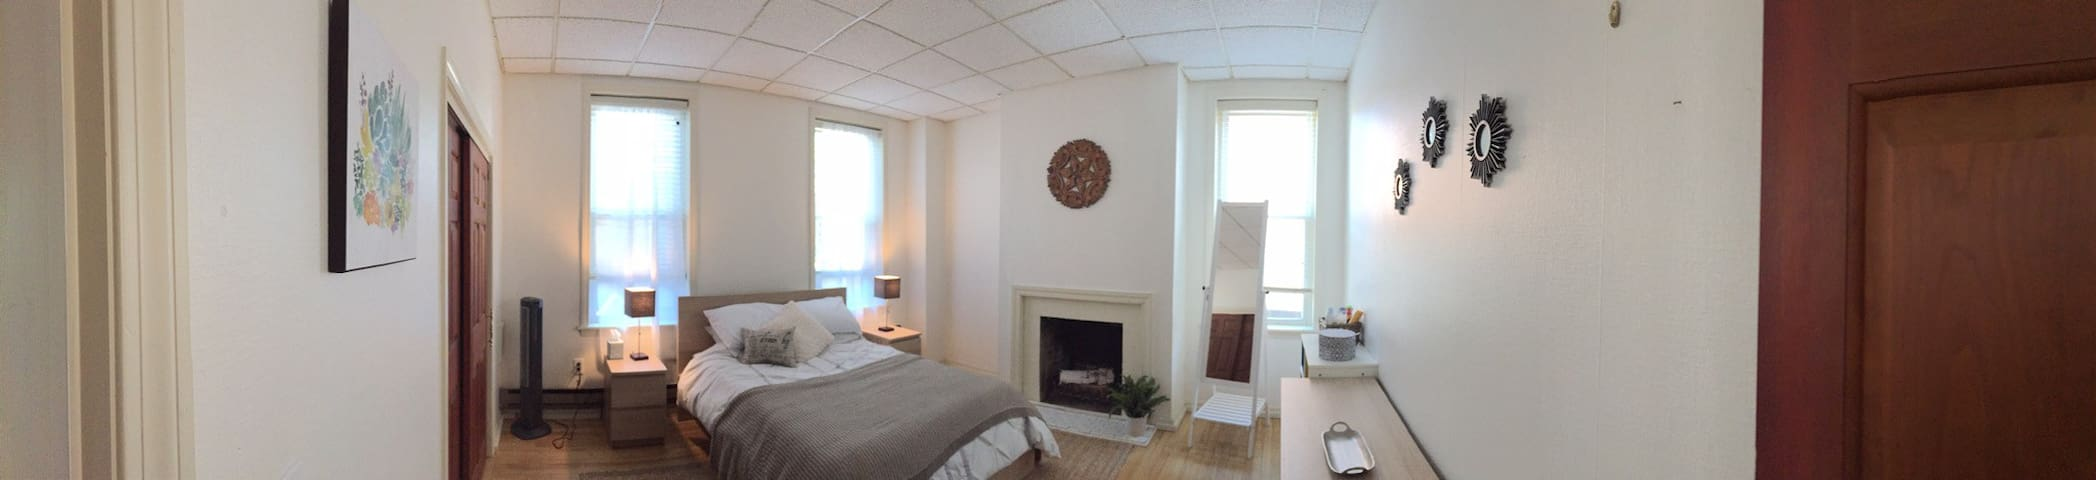 Downtown Apartment, Walk to Amherst College, UMASS - Amherst - Lakás